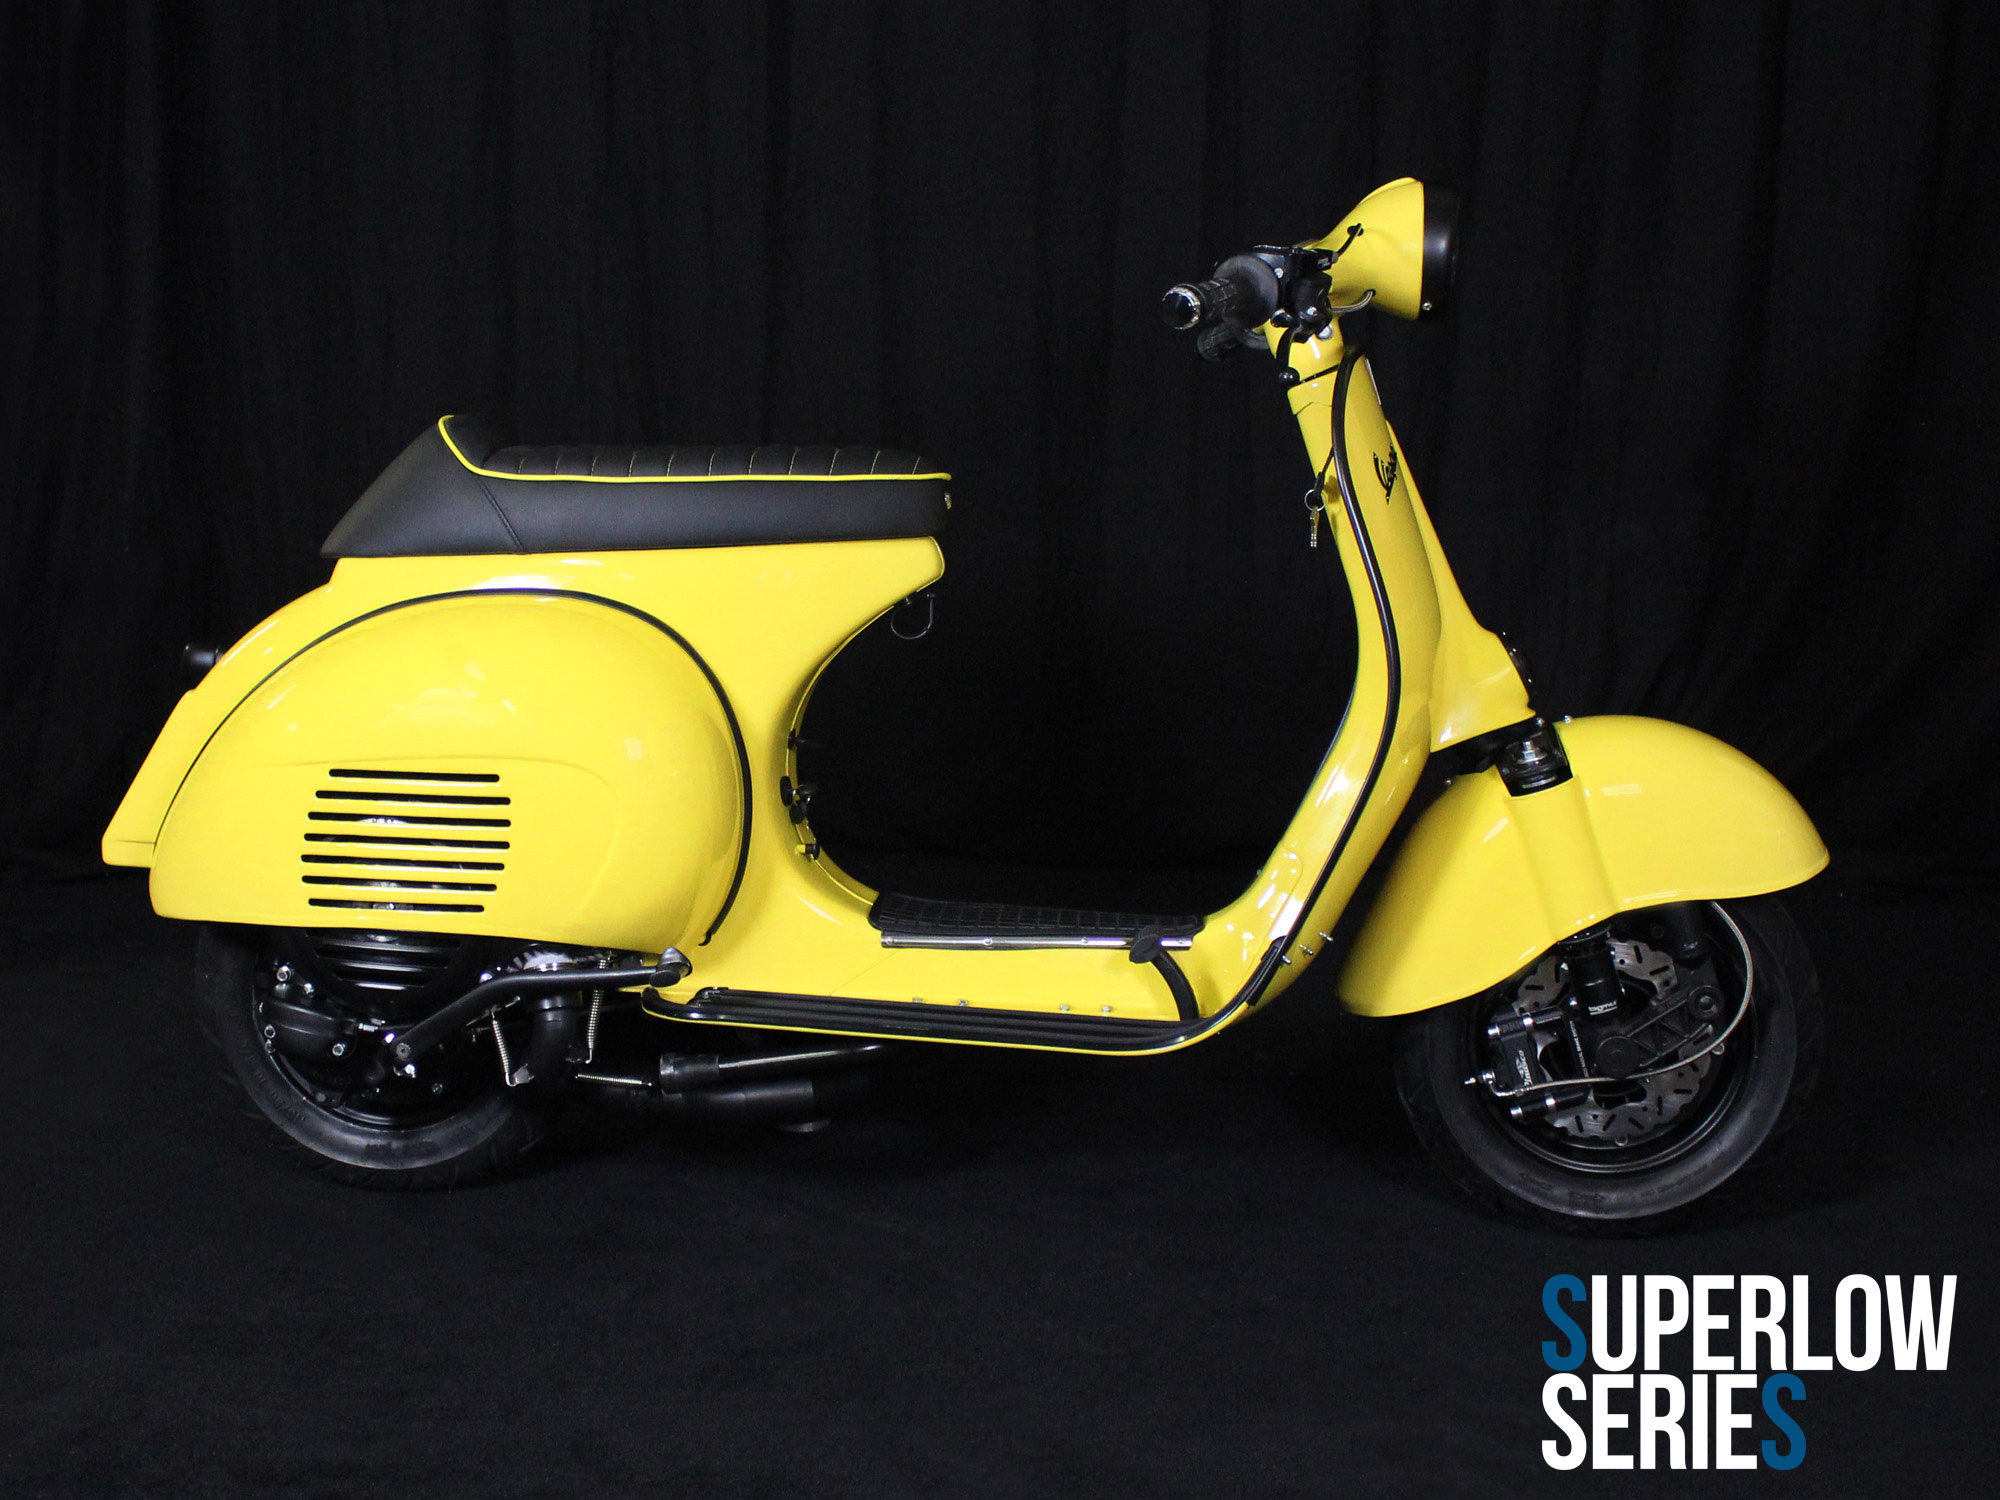 Custom Vespa Superlow Series Giallo